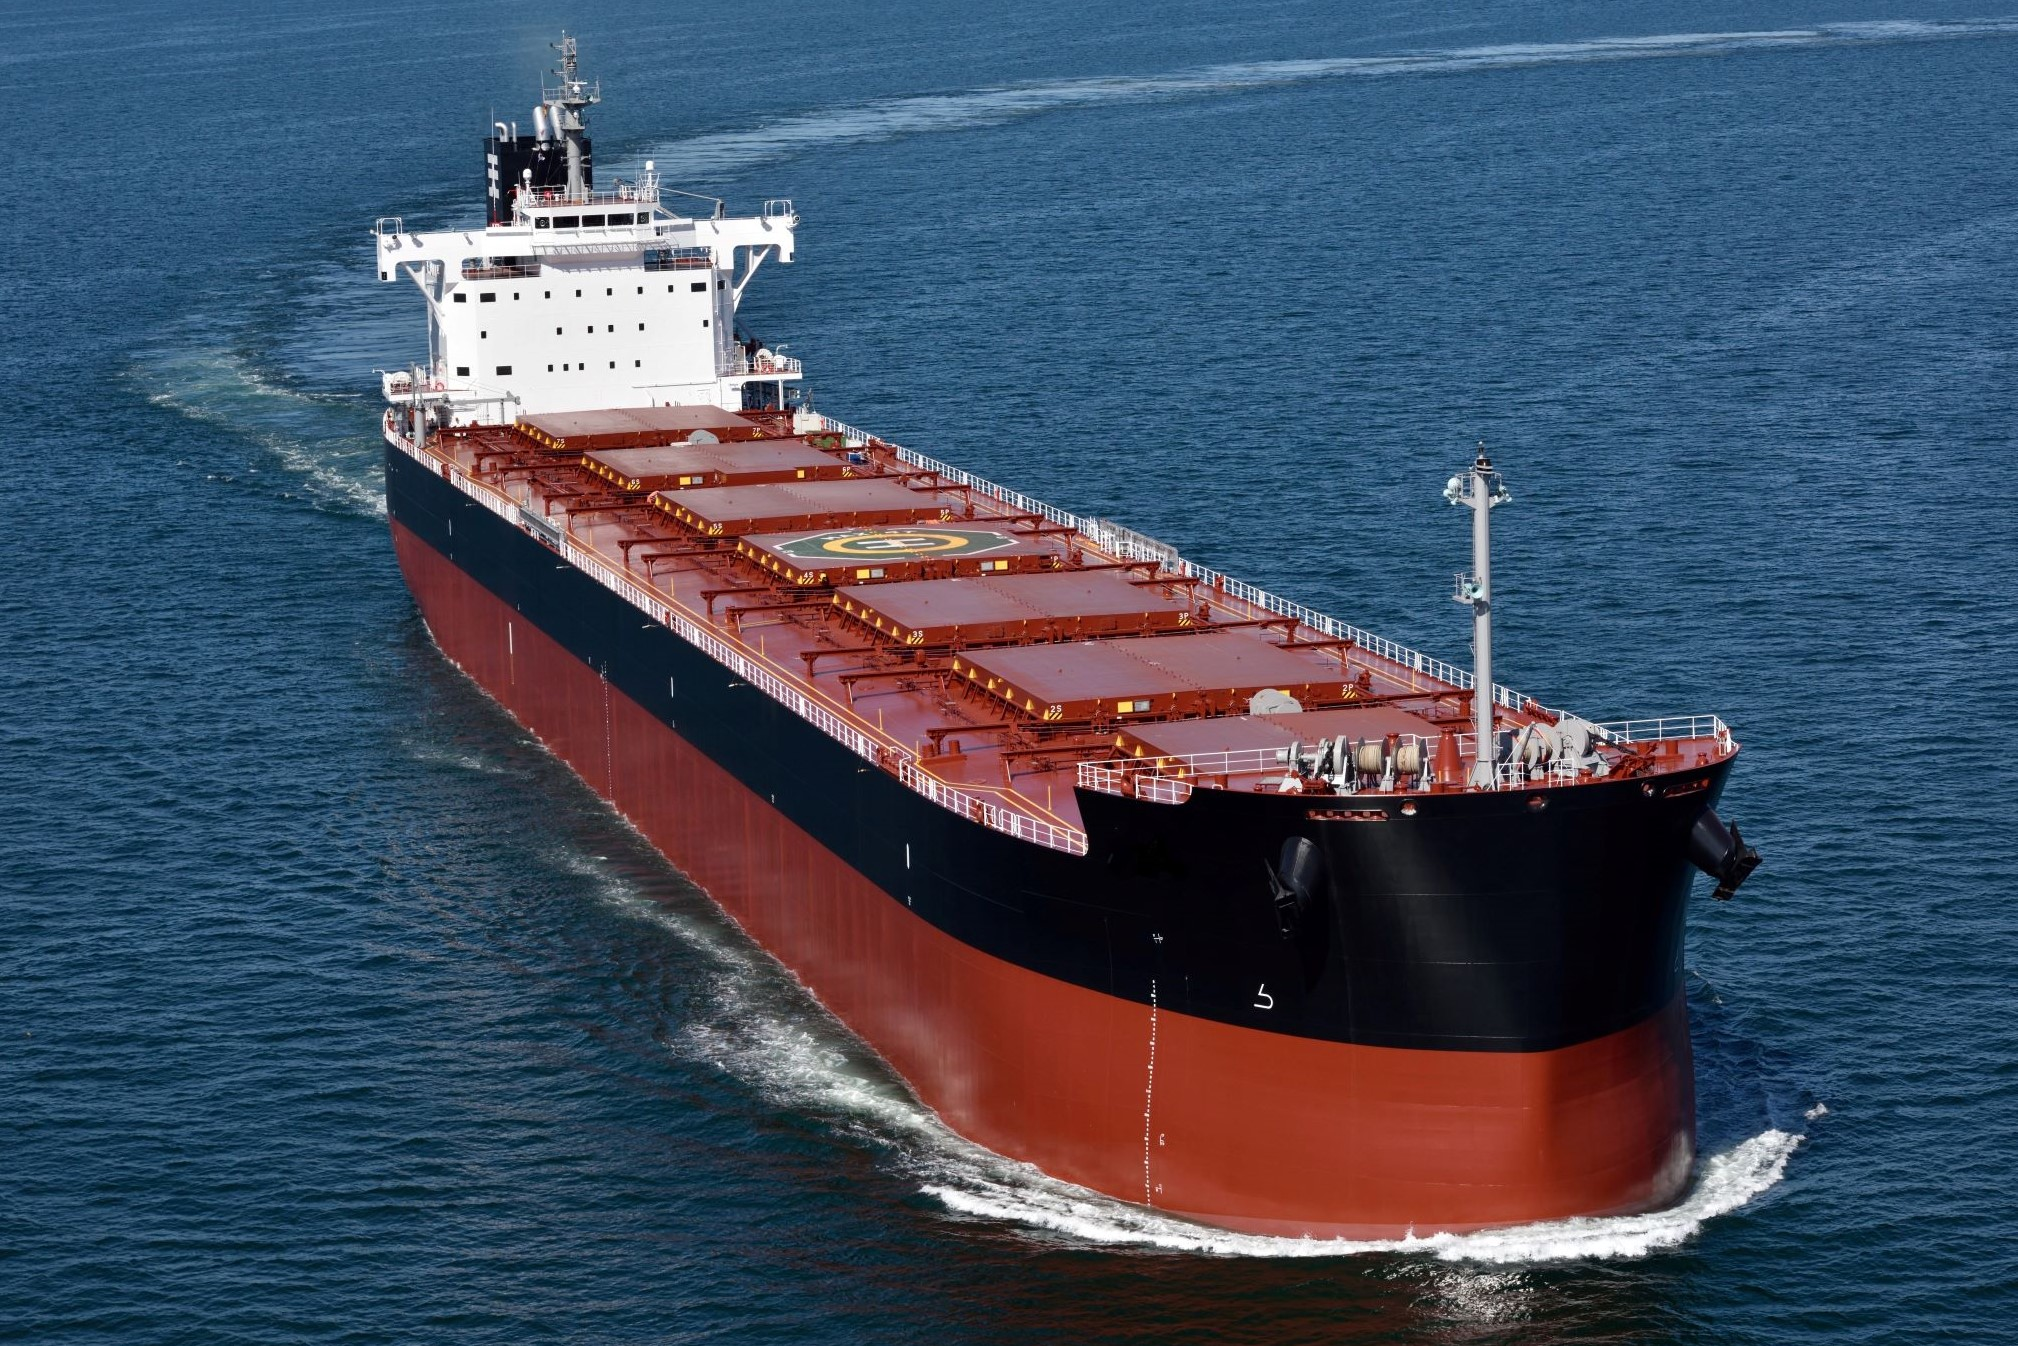 TSUNEISHI SHIPBUILDING completes the EEDI Phase 3 design for the main bulker models such as KAMSARMAX